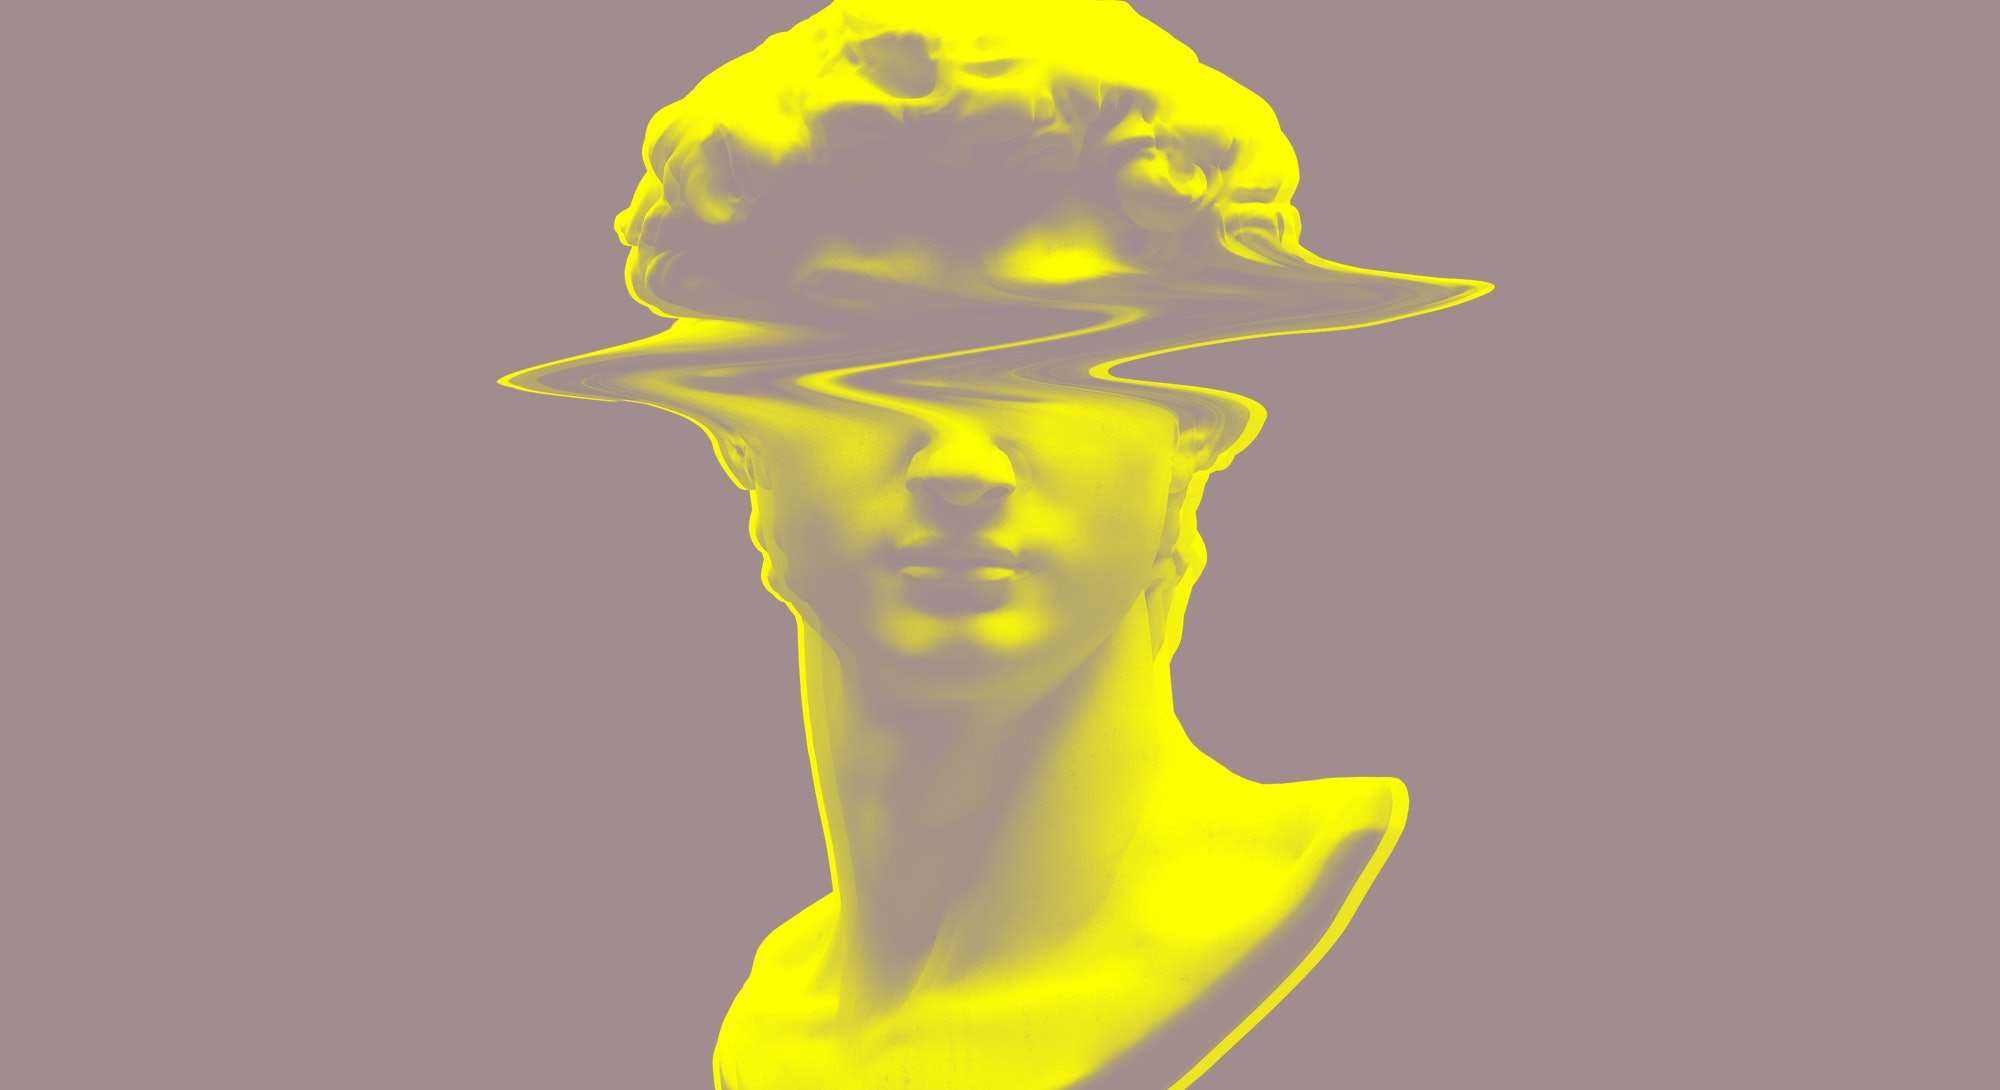 Digital RGB offset glitch illustration of Michelangelo's David head bust sculpture from 3D rendering in the style of modern graphics isolated on black background.